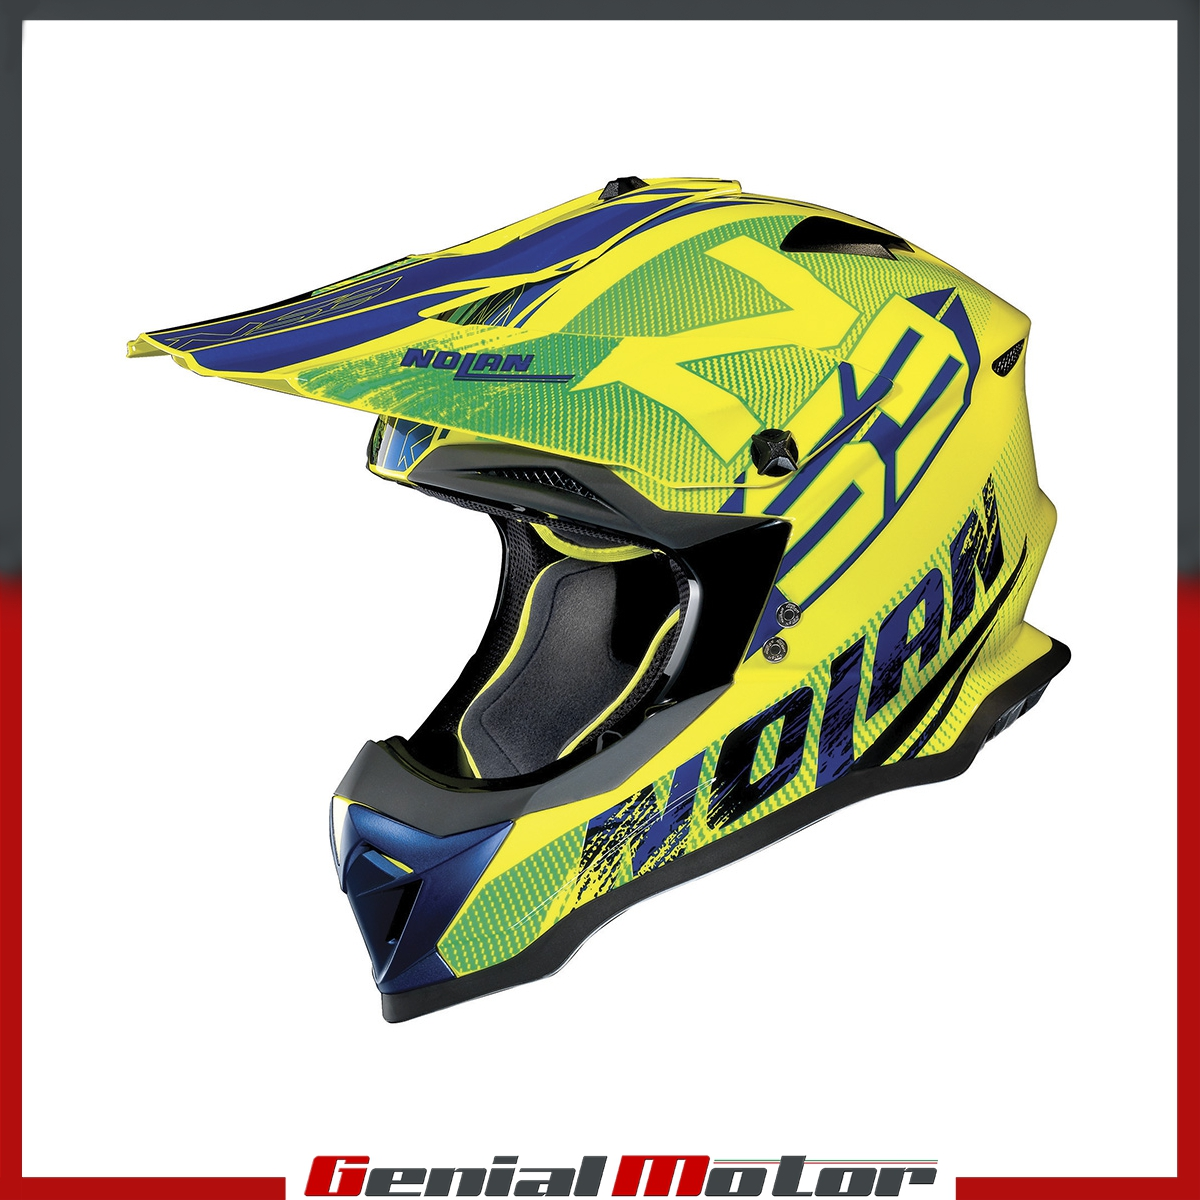 CASQUE NOLAN N53 WHOOP 049 TAILLE XL LED YELLOW